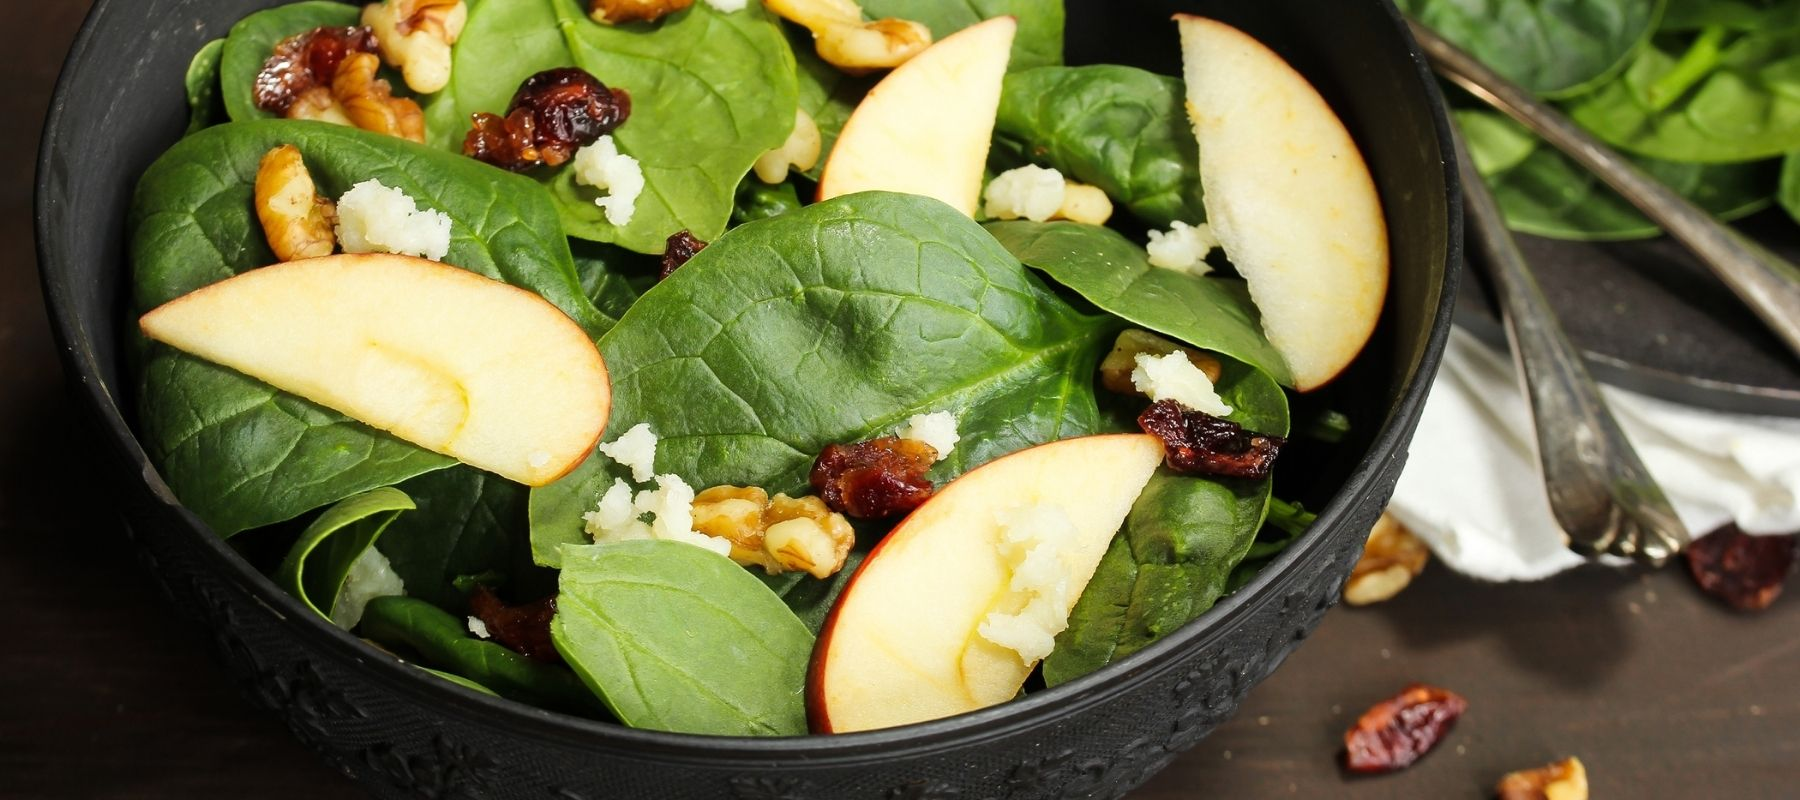 Anna's Honey Apple Salad Made with natural Honey and Apple Slices